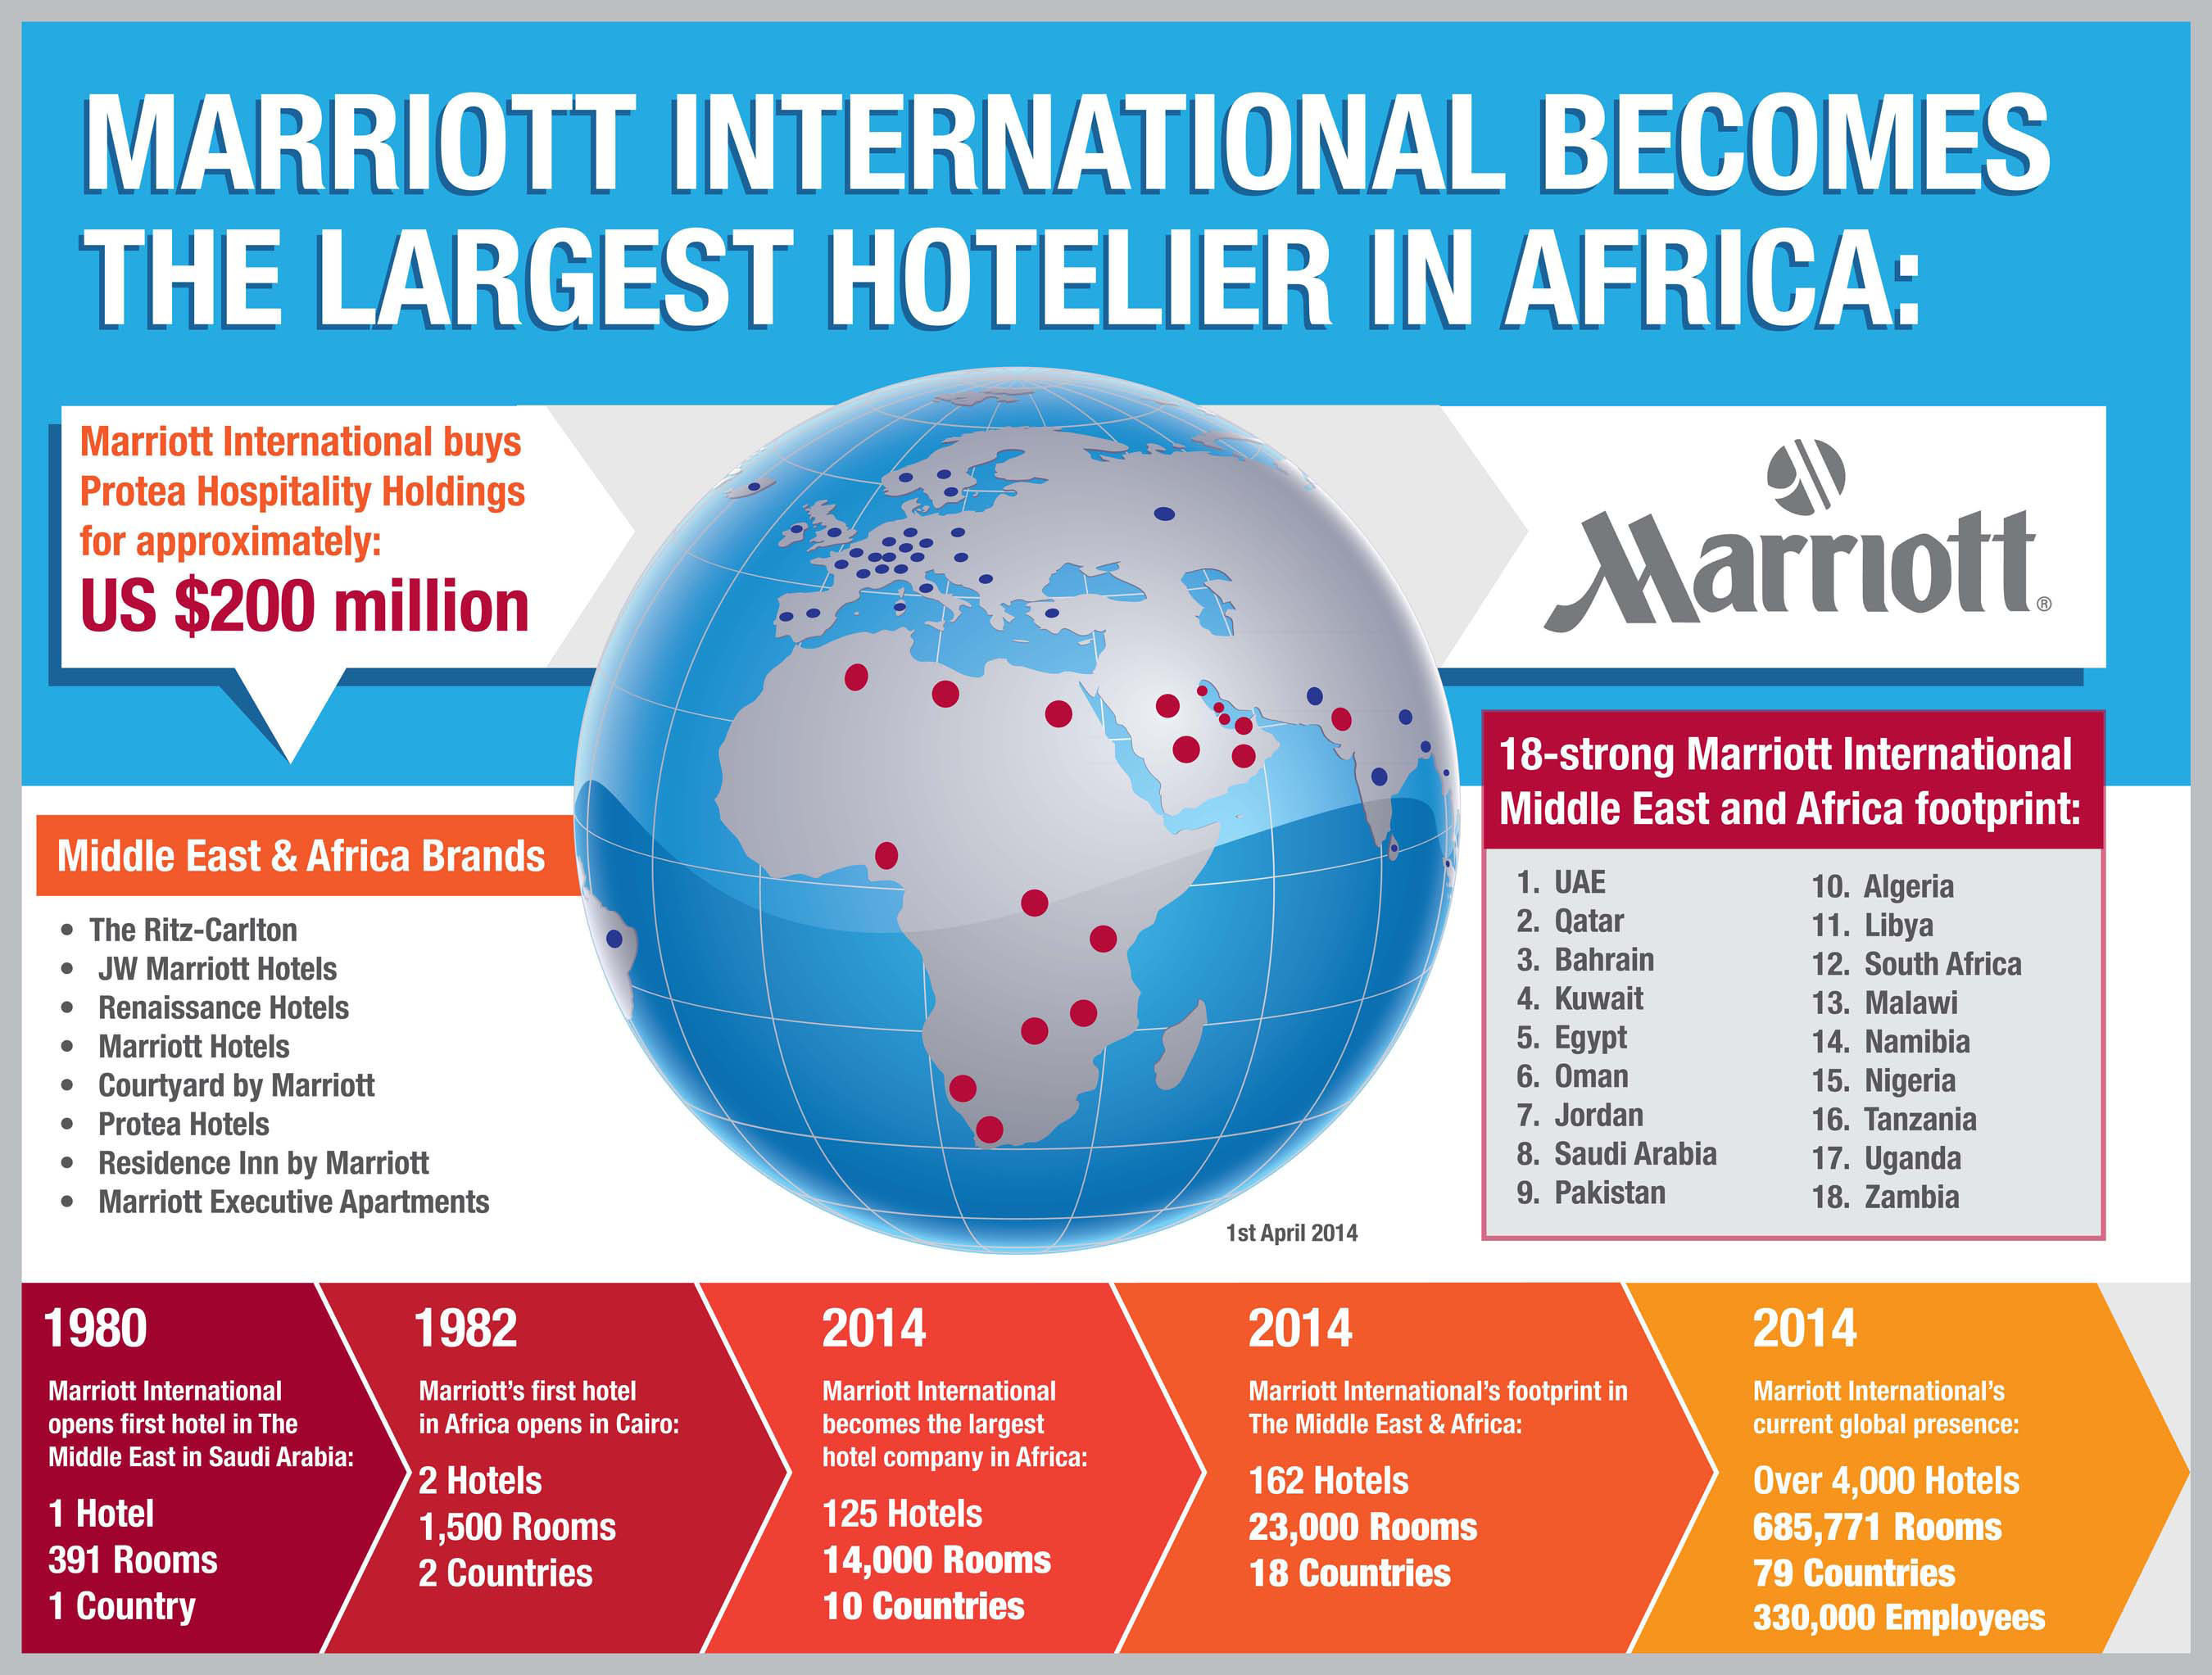 Marriott Becomes Largest Hotel Company in Africa (infographic). (PRNewsFoto/Marriott International, Inc.)